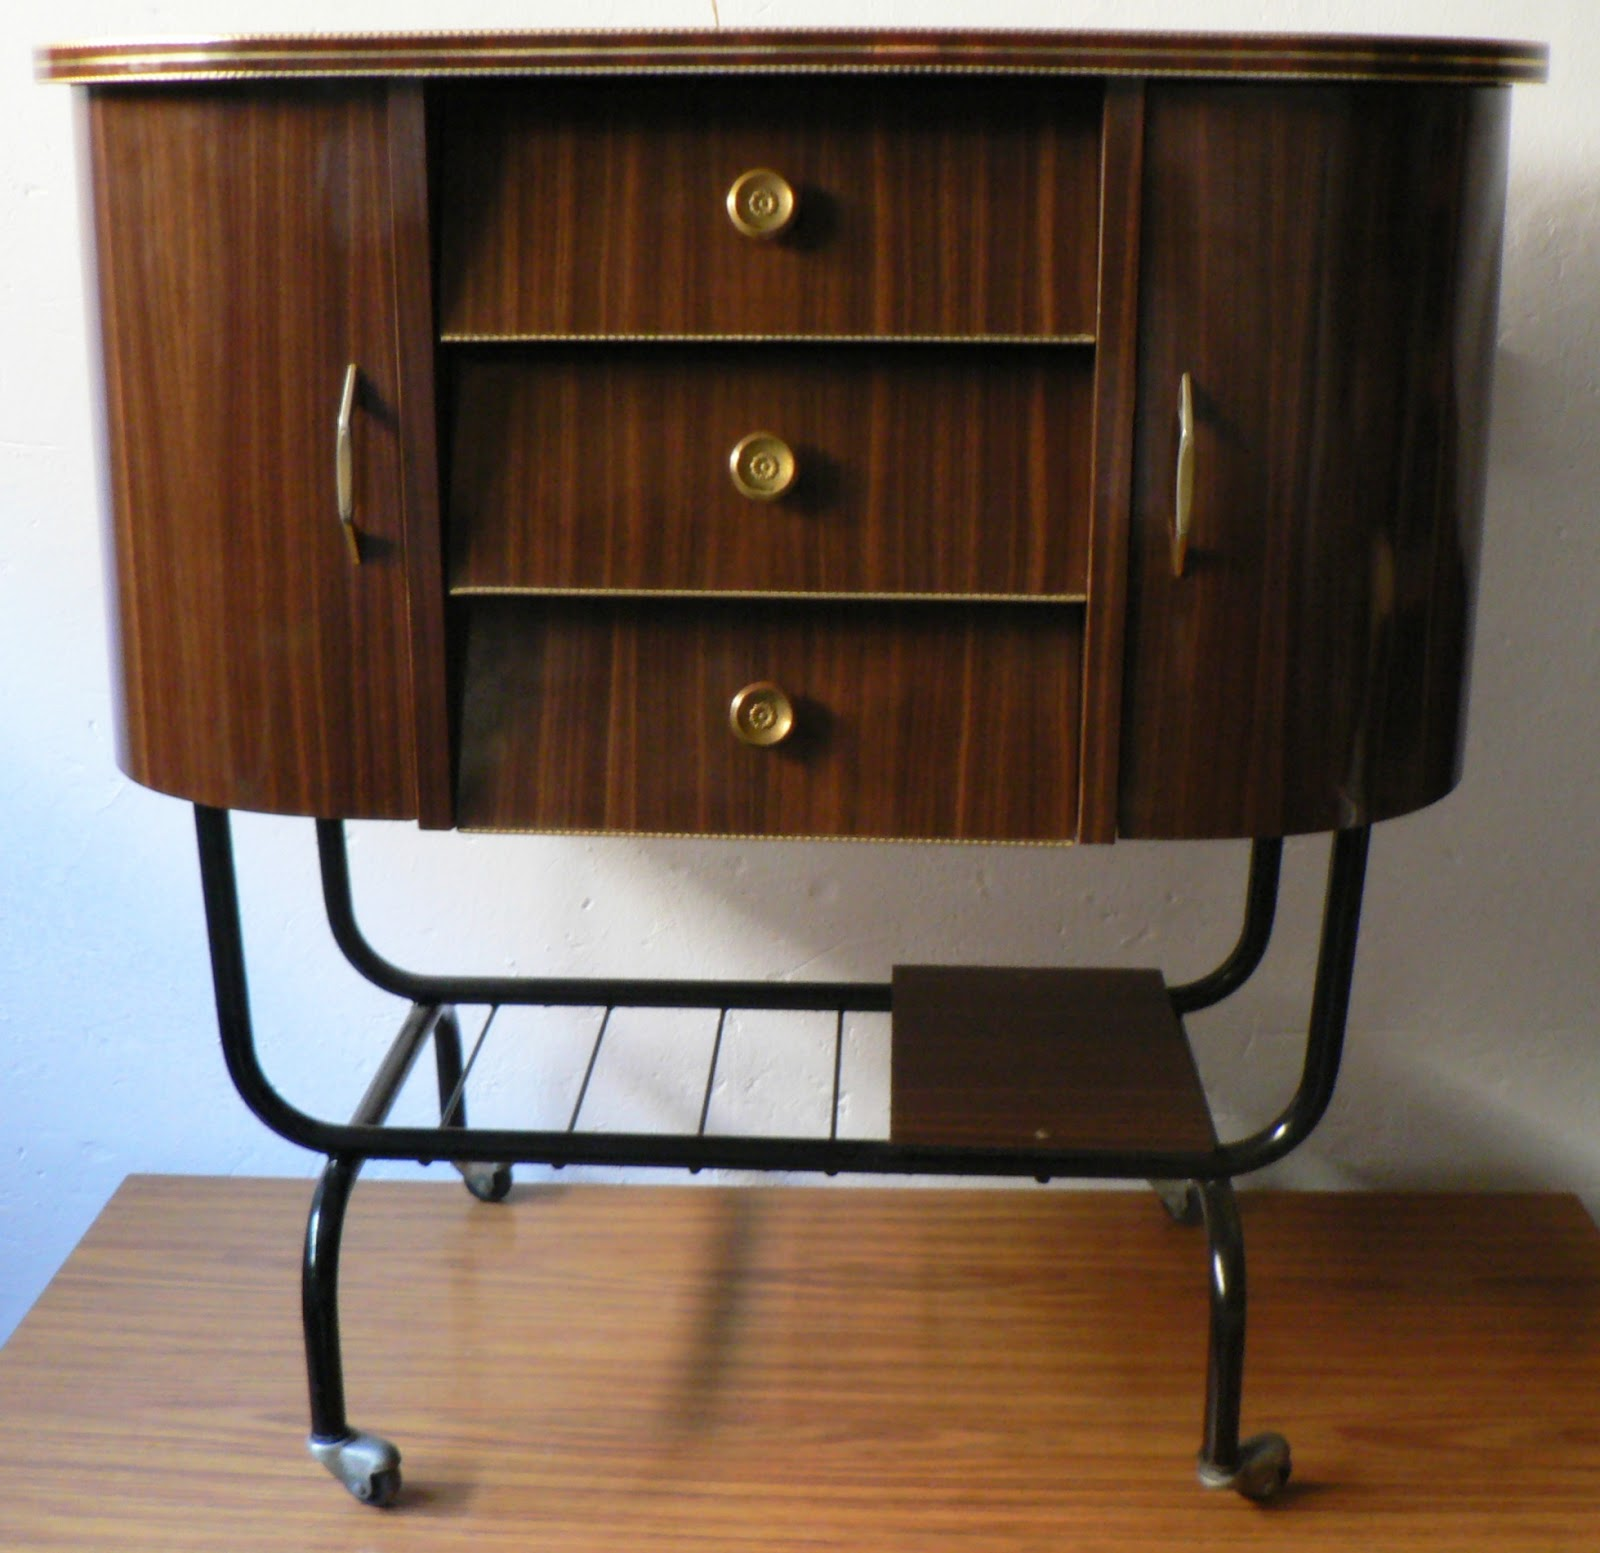 Vintage kitsch siglo xx mueble bar auxiliar formica a os 50 - Muebles daneses anos 50 ...